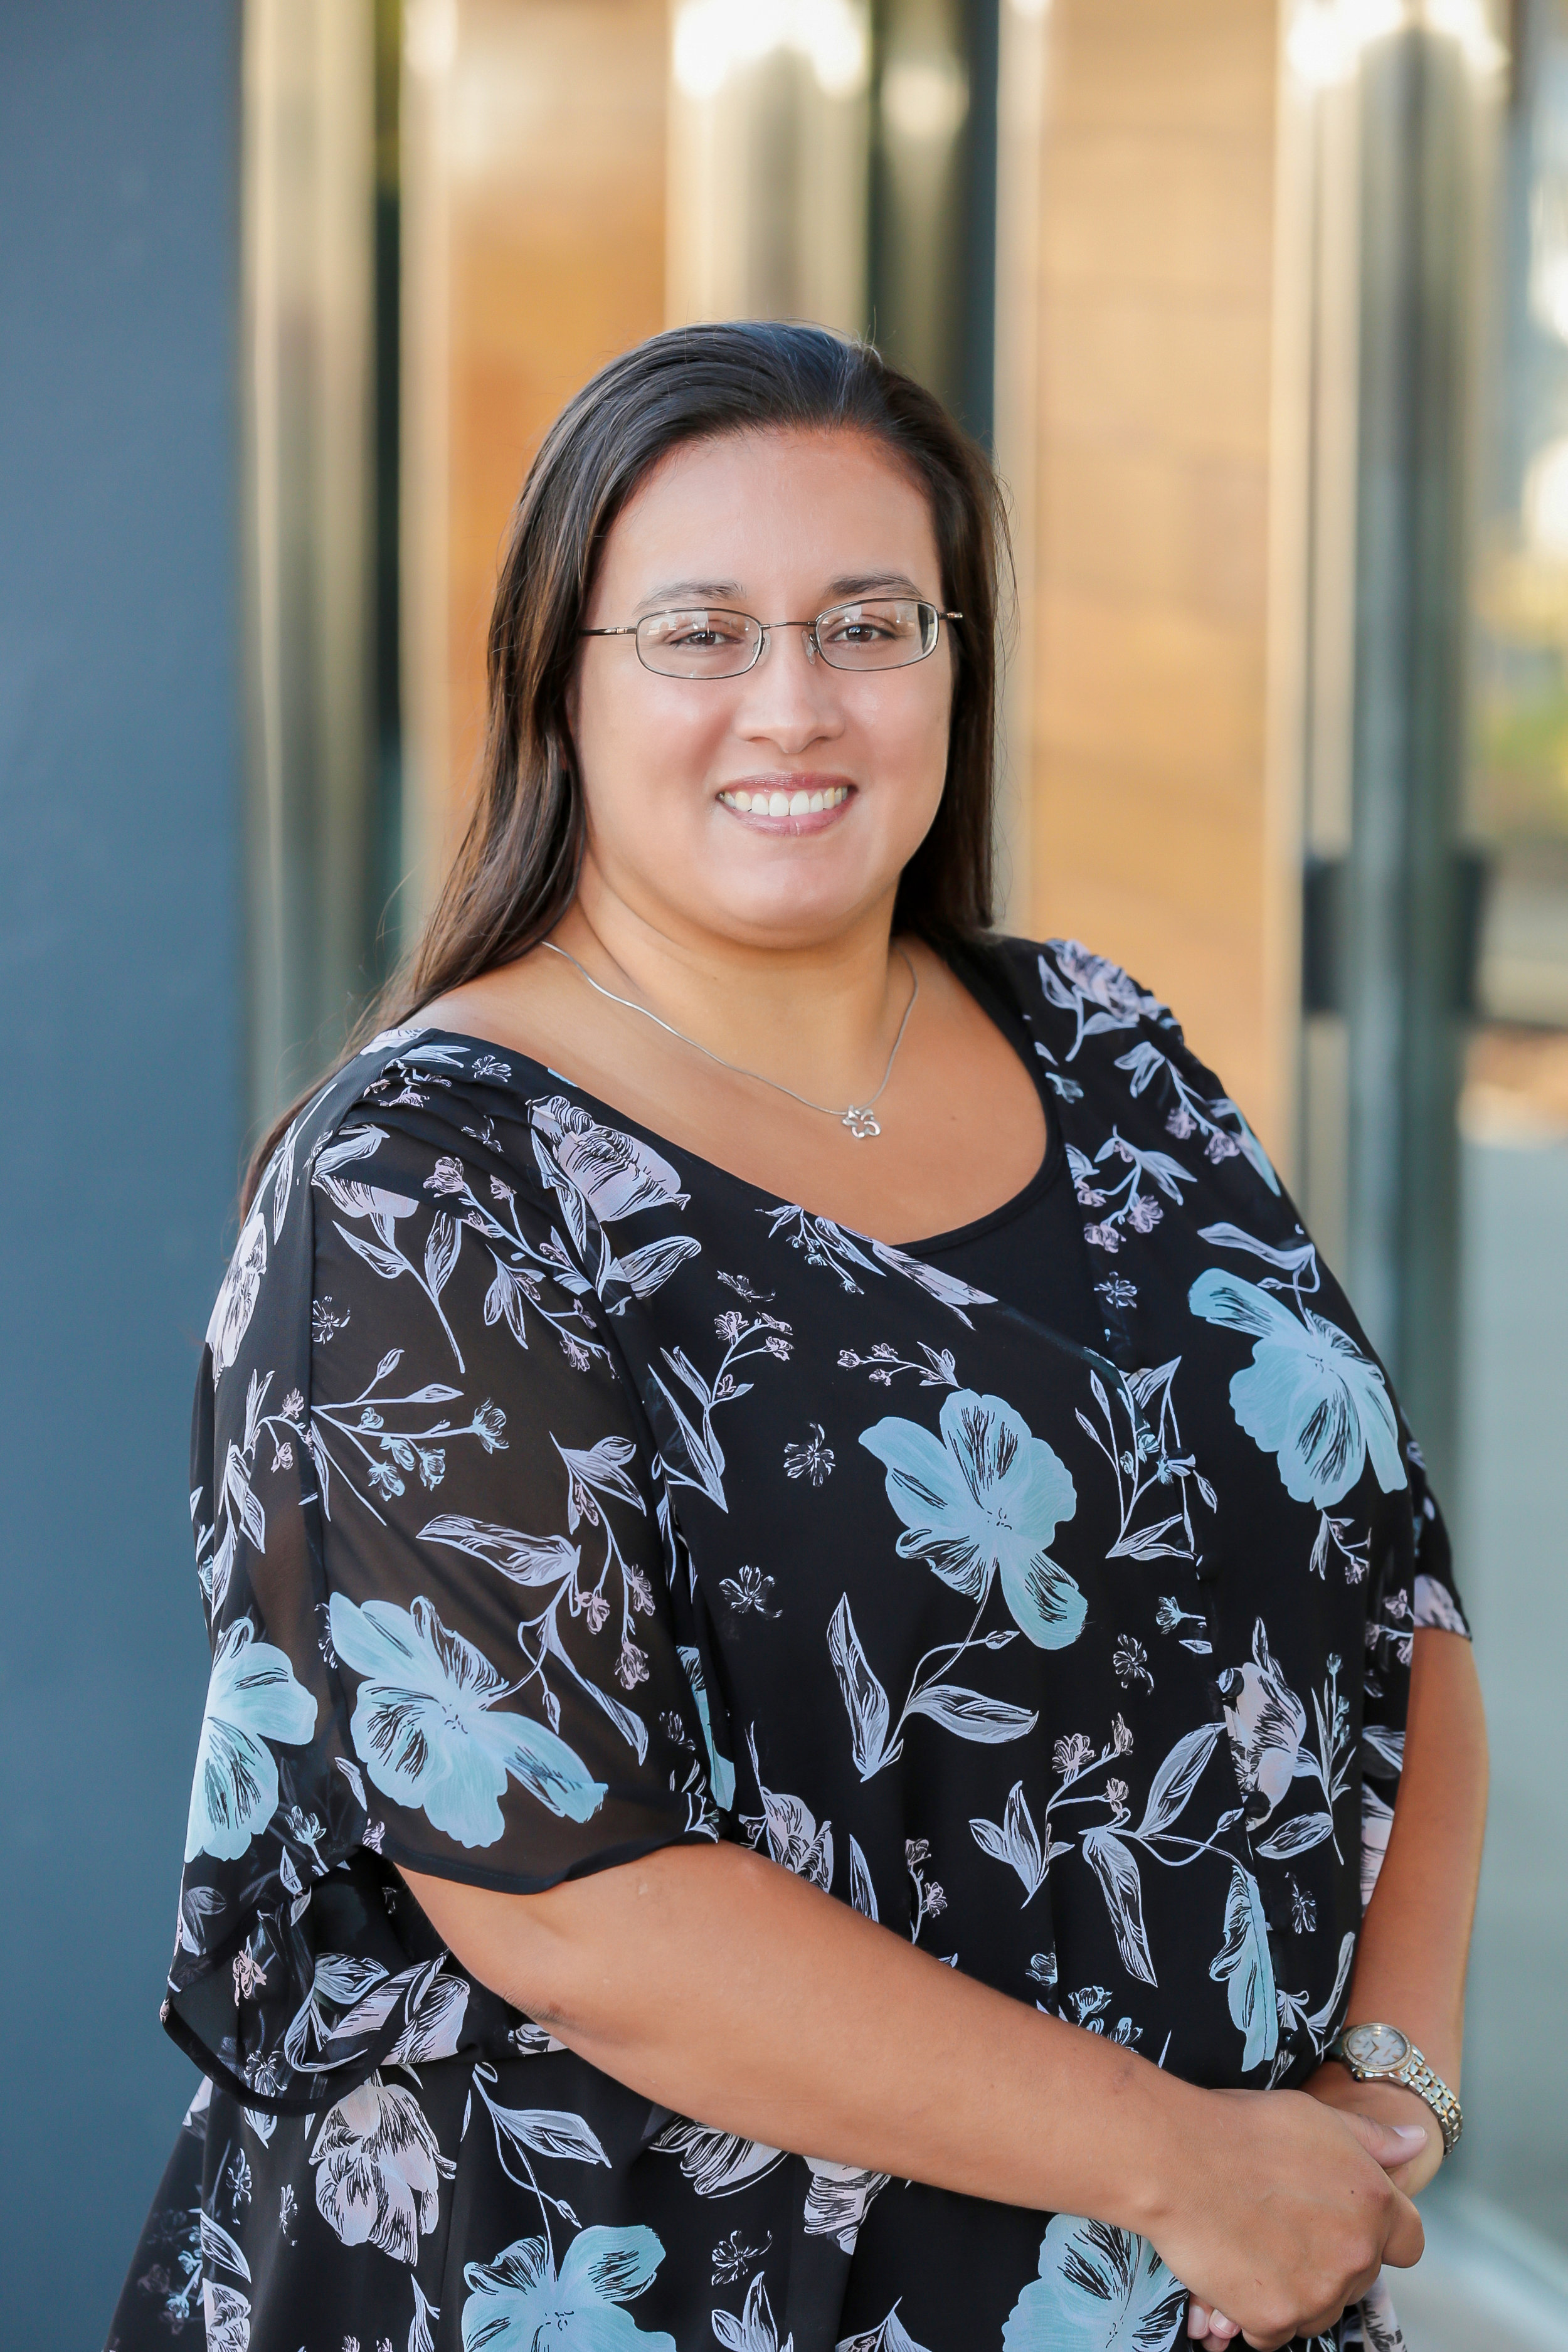 - ALYSSA PEDERSENOPERATIONS MANAGERAlyssa joined us in 1999 as an Accounts Payable Assistant while obtaining her degree in accounting from San Jose State University. Read lessToday, Alyssa provides a wide range of invaluable services for Gidel & Kocal, from accounts receivable management, planning employee safety training to preparing and reviewing monthly financial statements. In addition, when you call Gidel & Kocal, it's likely to be Alyssa's cheerful voice that you'll hear.Contact Alyssa